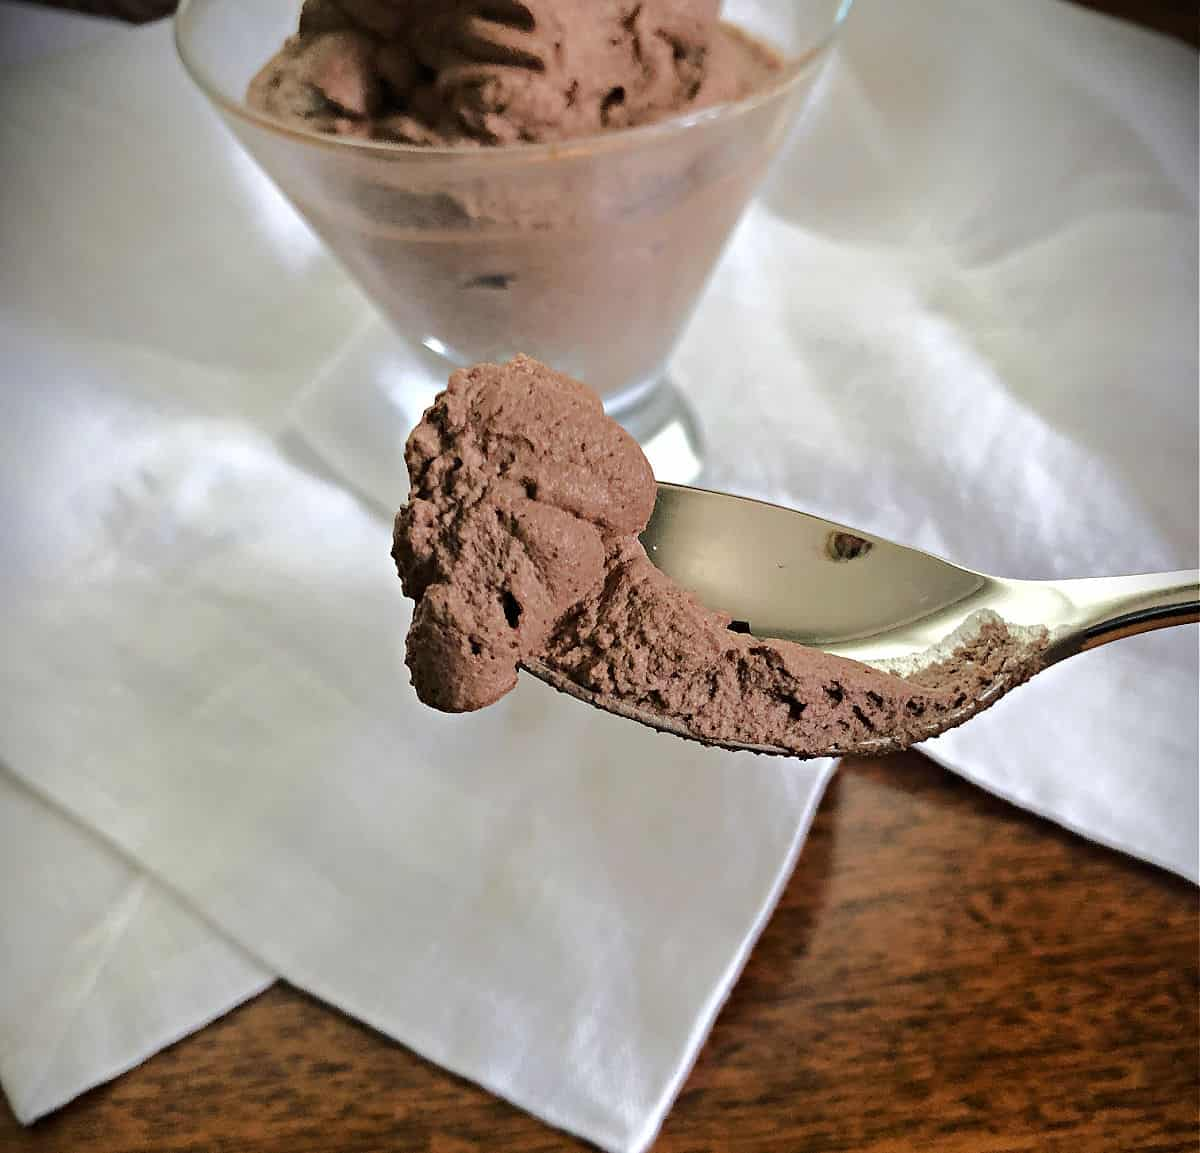 spoon of chocolate mousse